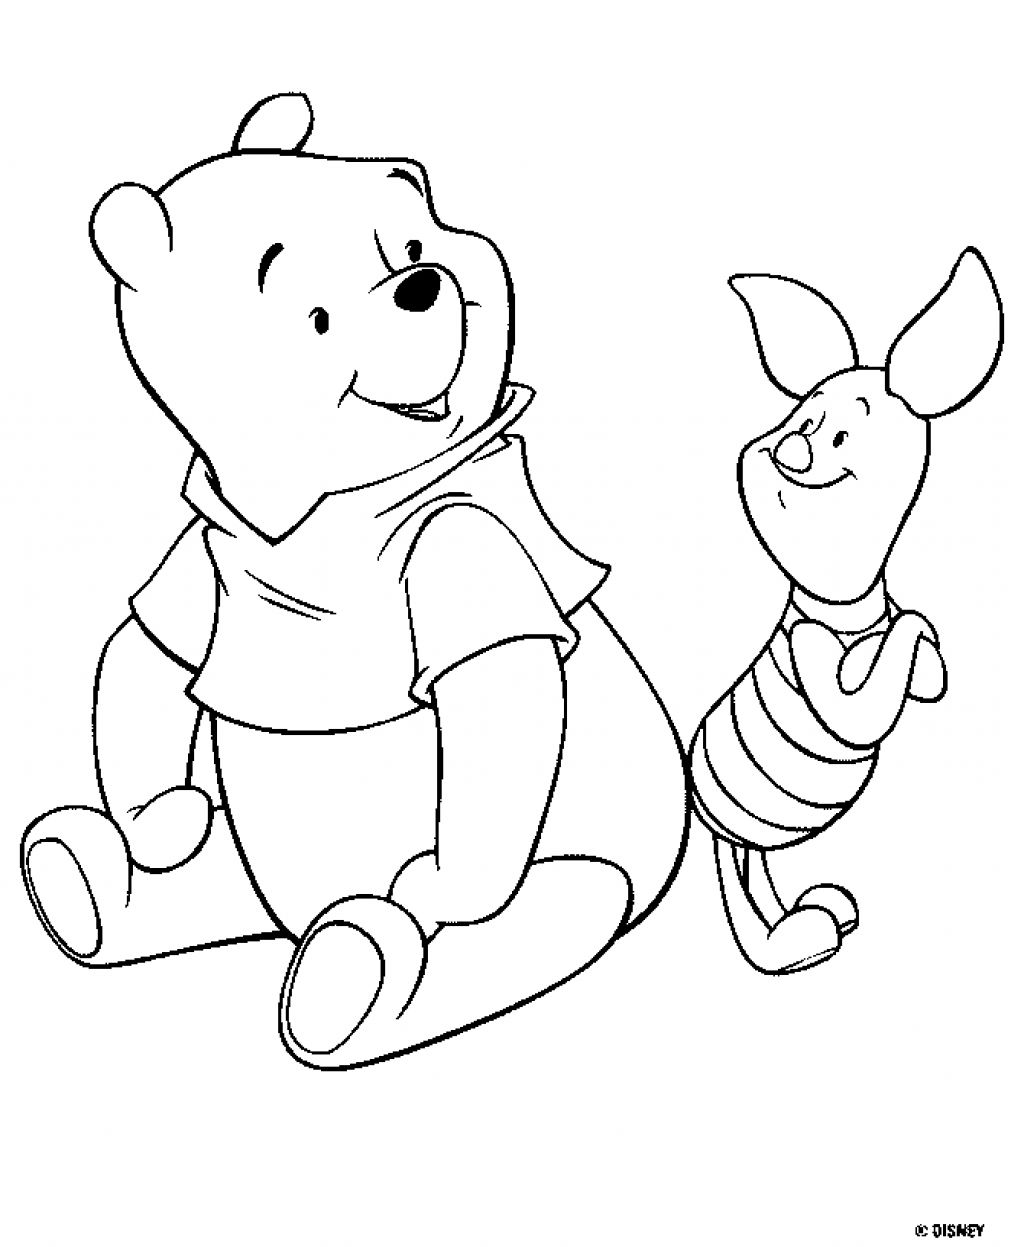 Winnie The Pooh Original Pages winnie the pooh coloring | ‧ reading ...